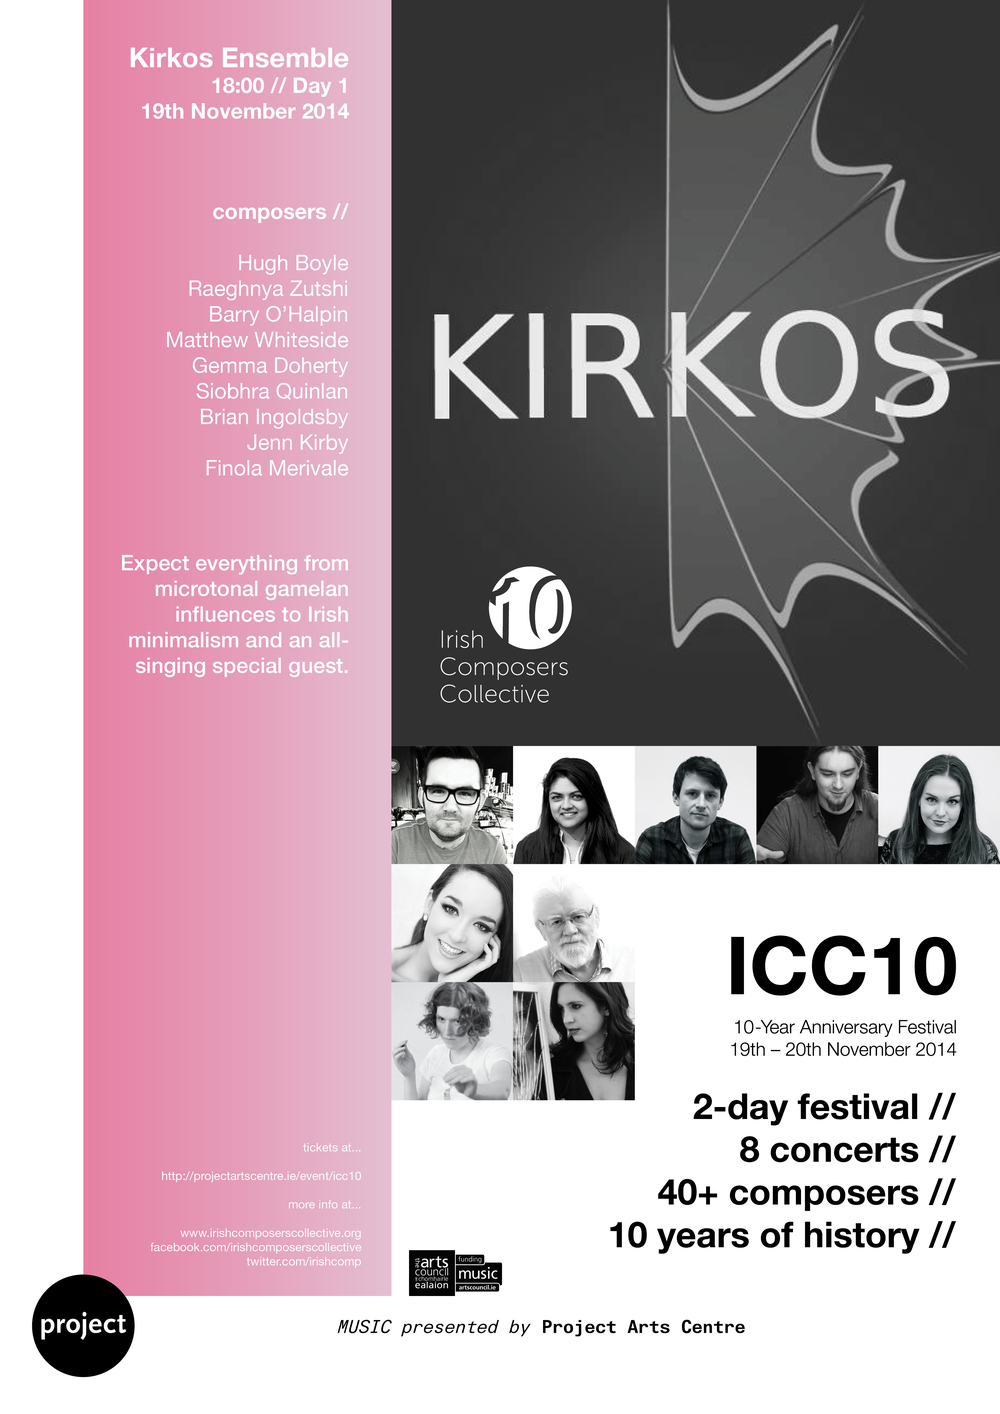 icc10 a3 poster_Kirkos.png